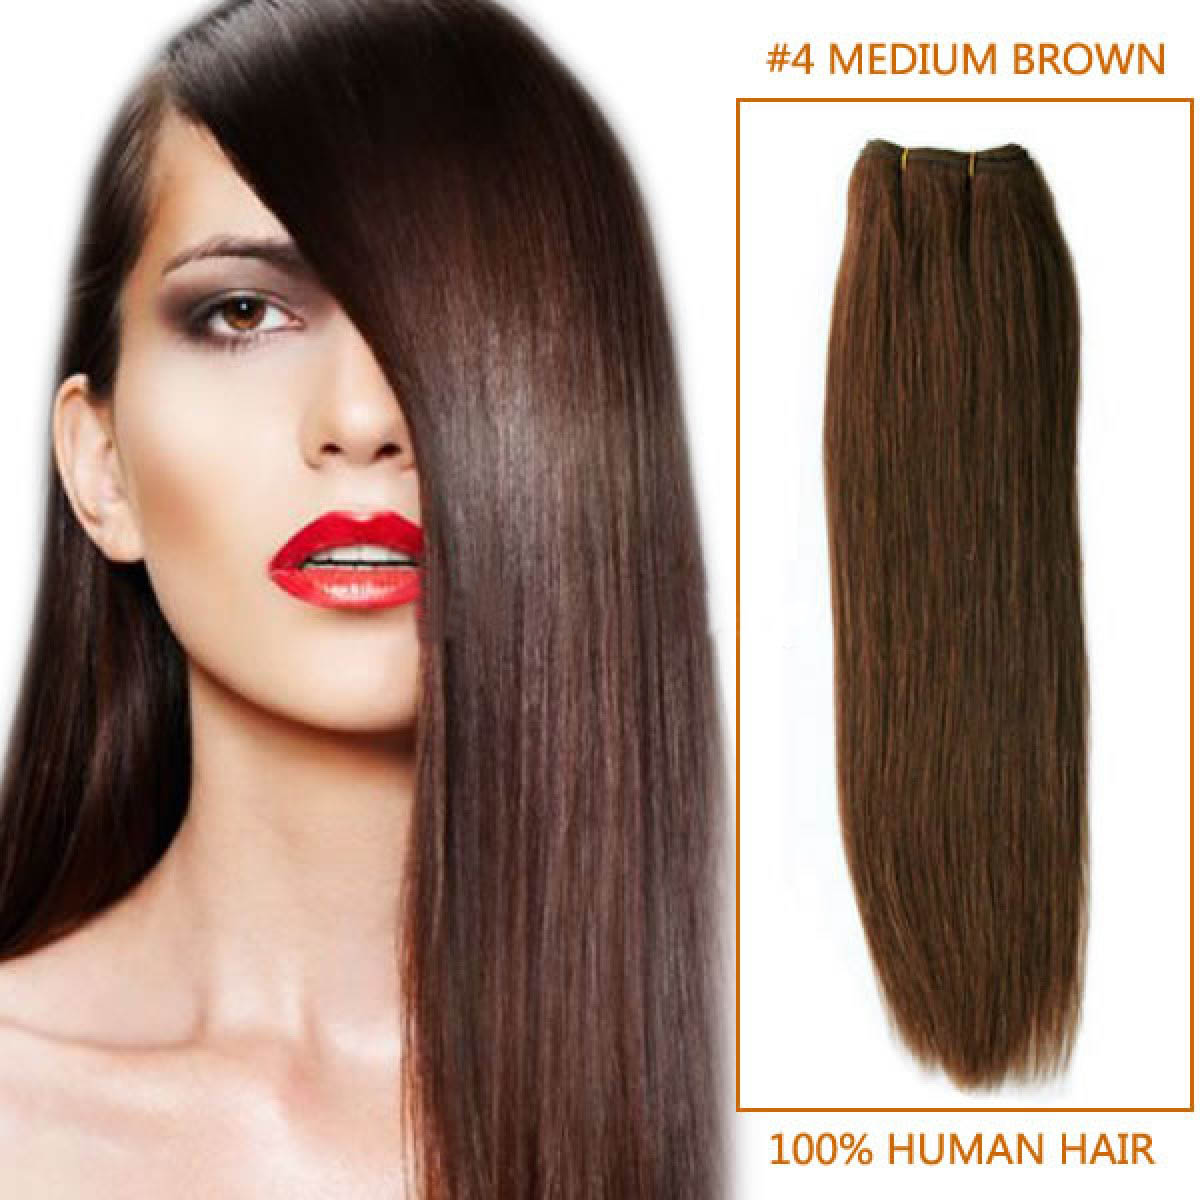 32 Inch 4 Medium Brown Straight Indian Remy Hair Wefts